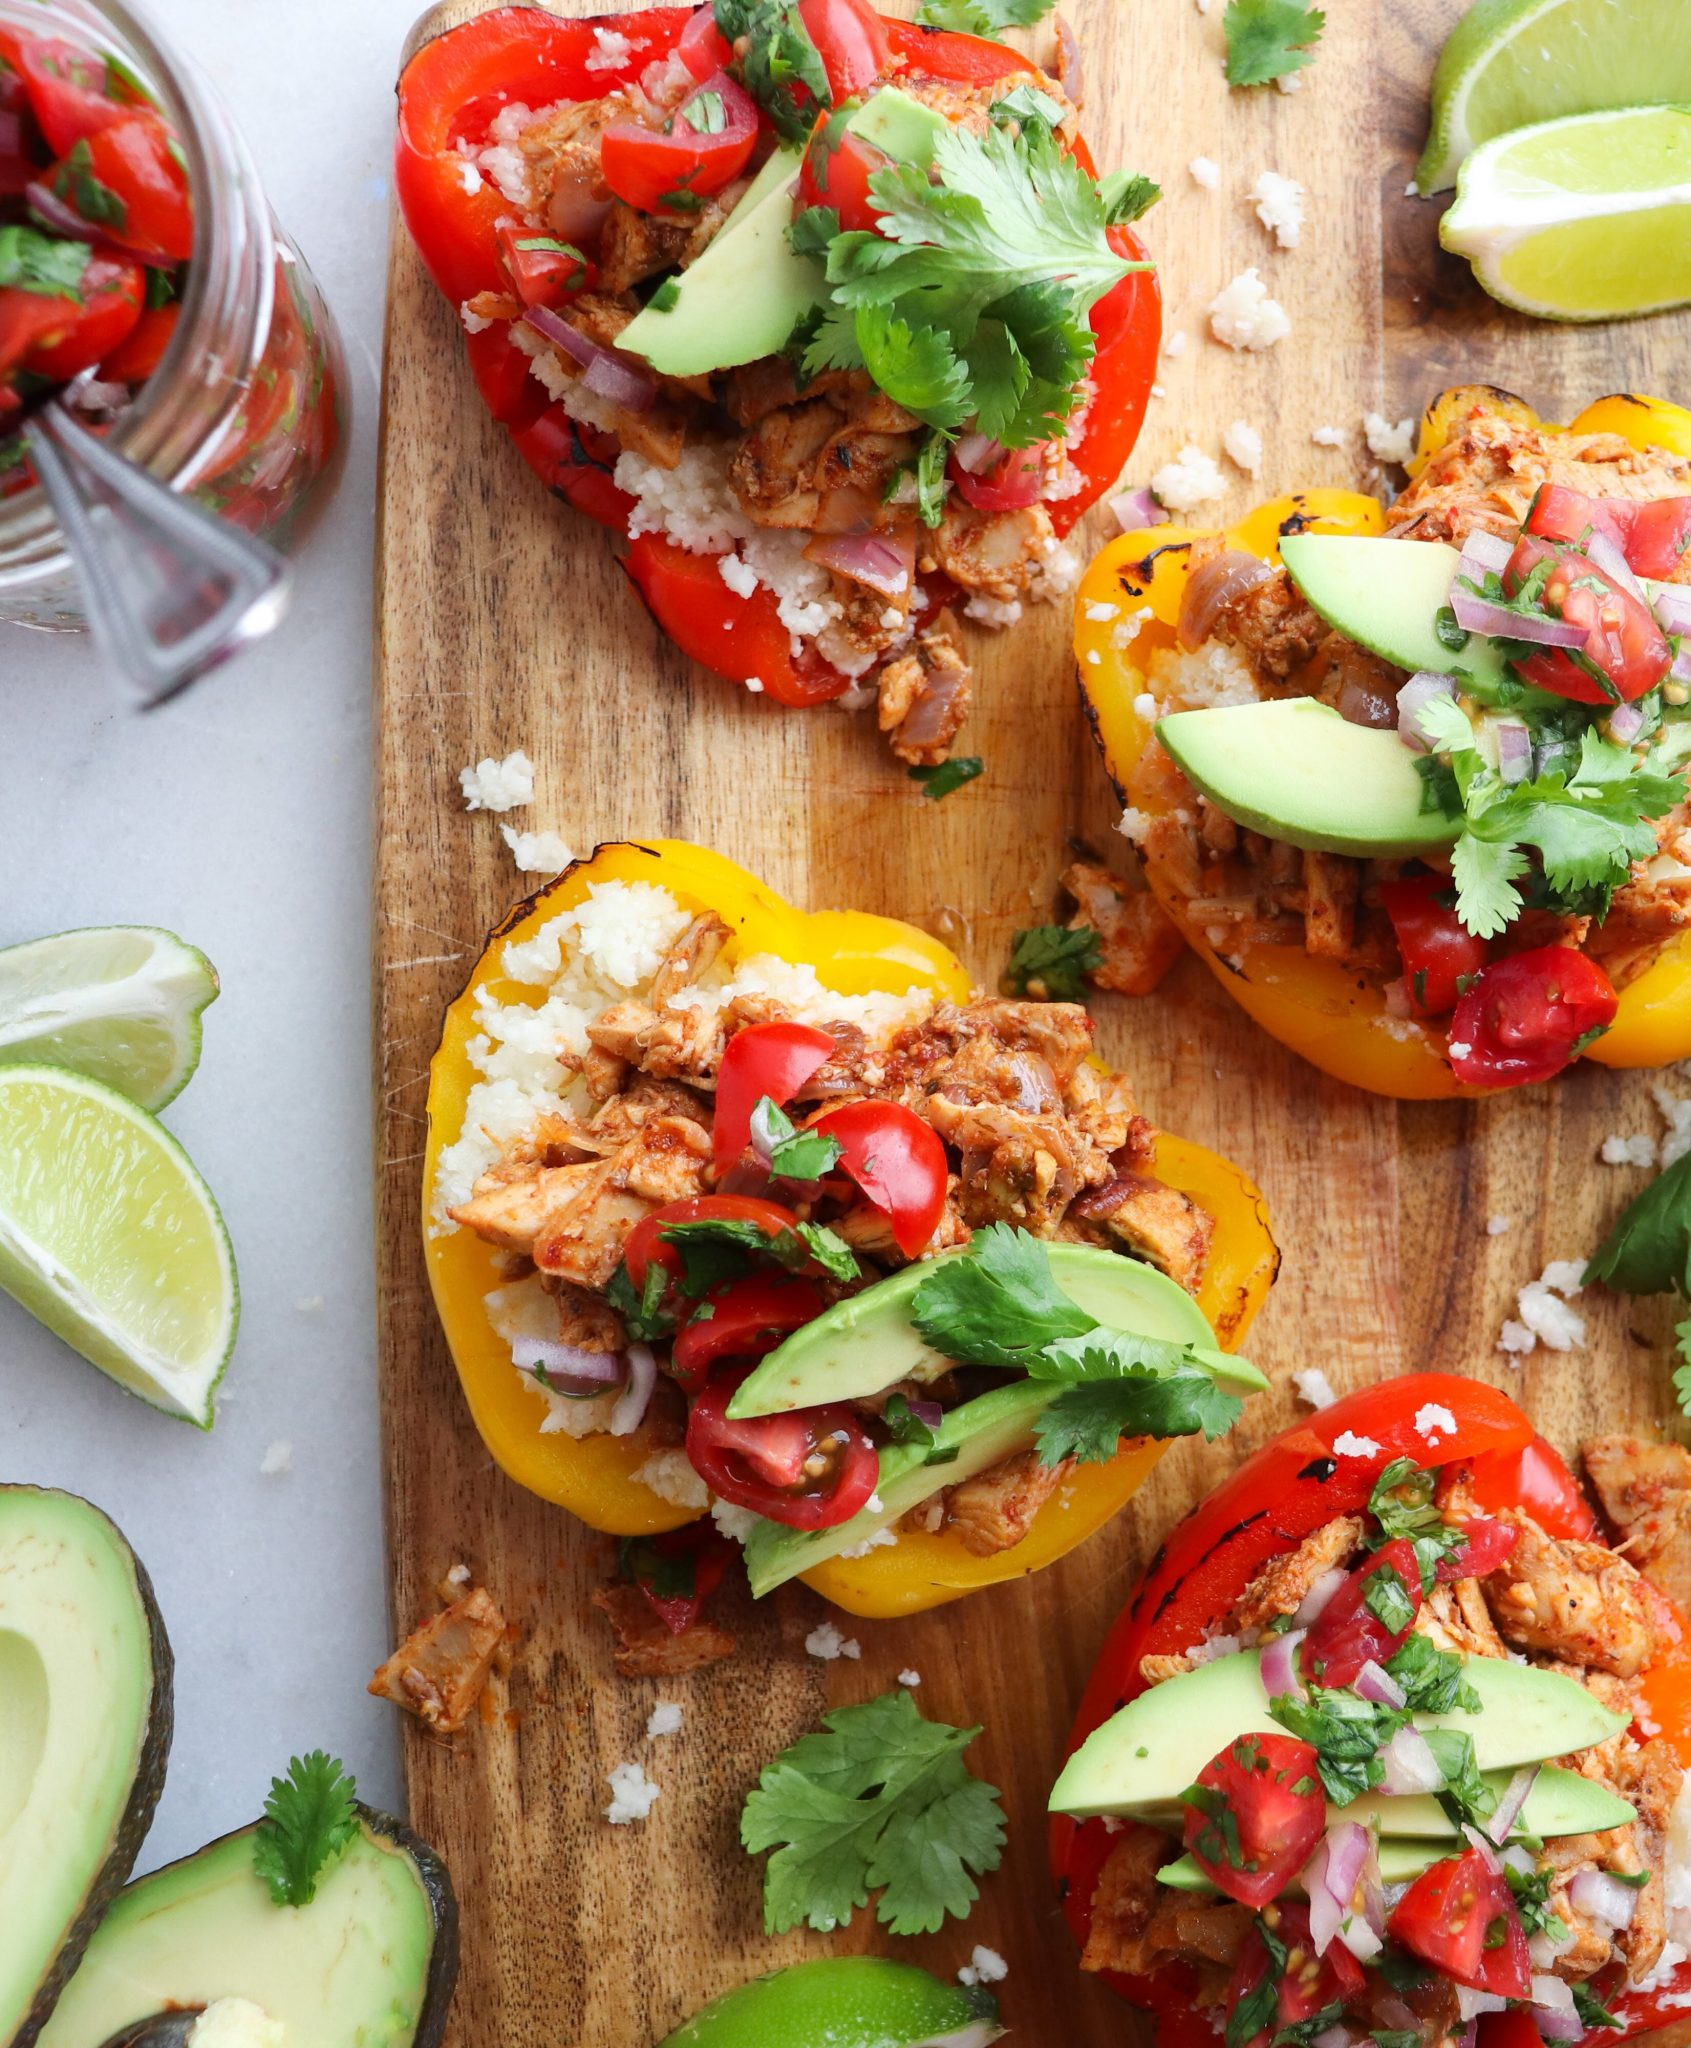 Close up of stuffed fajita bell peppers with fresh pico and avocado slices.